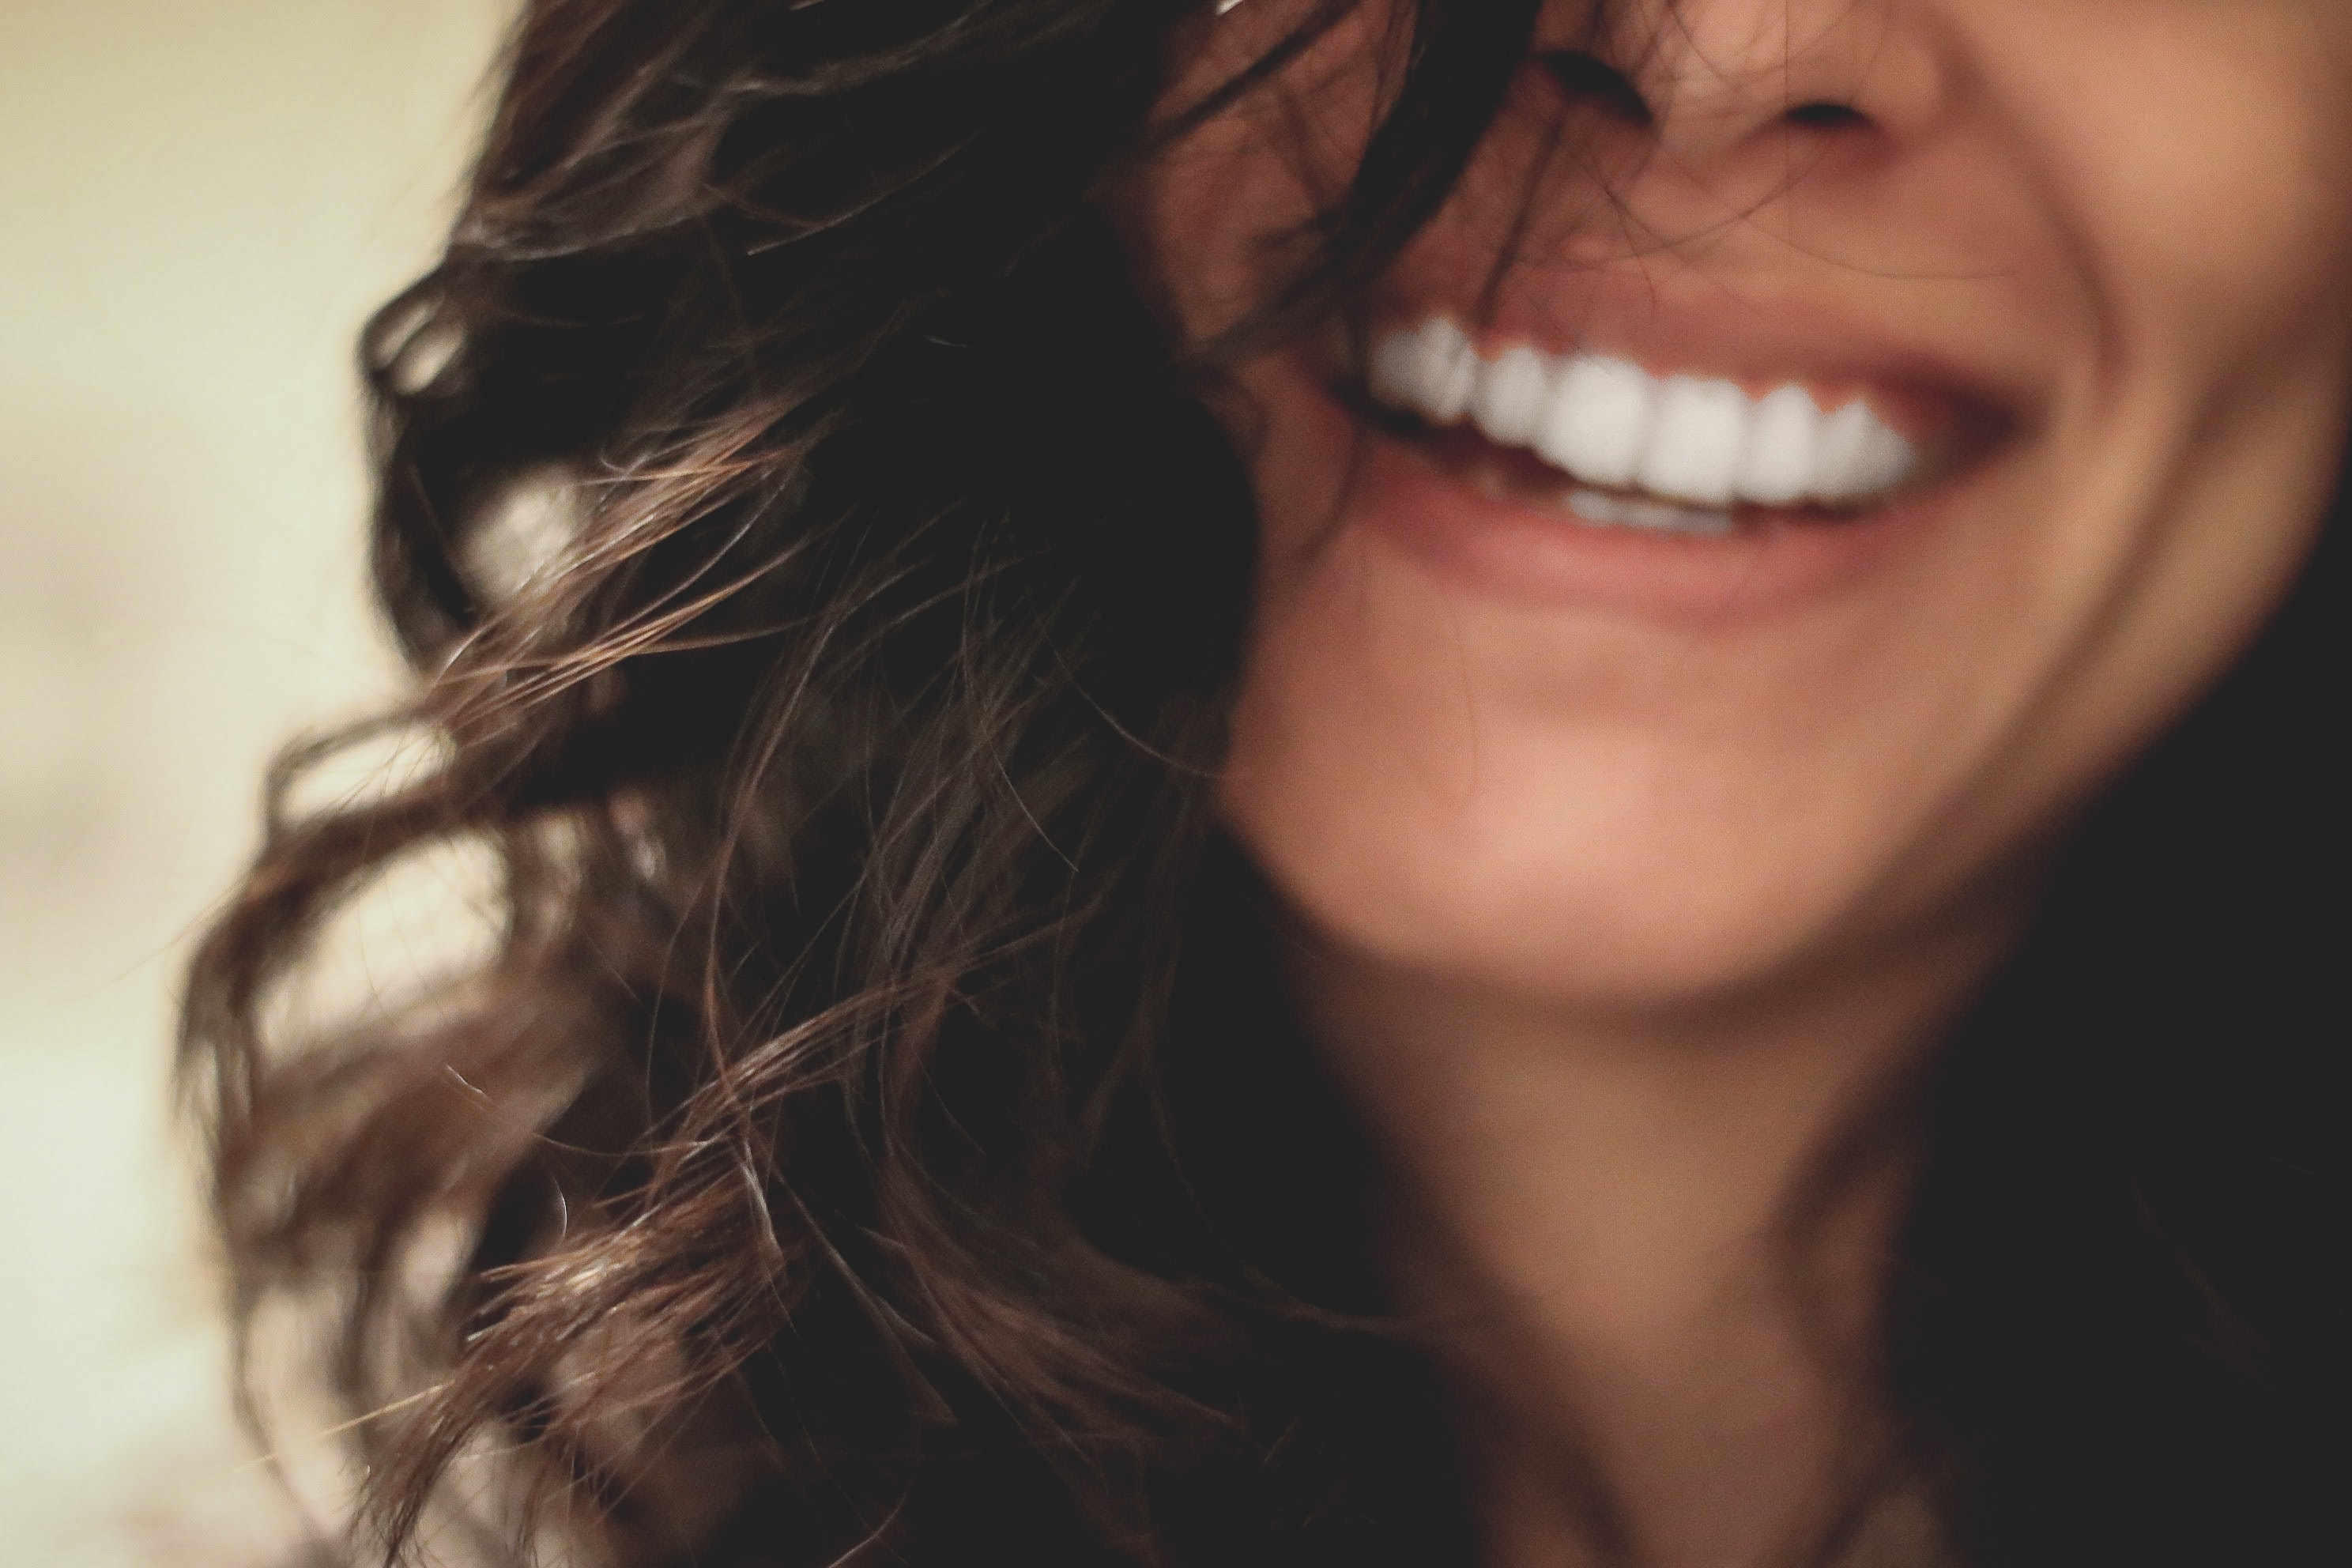 long black haired woman smiling close-up photography